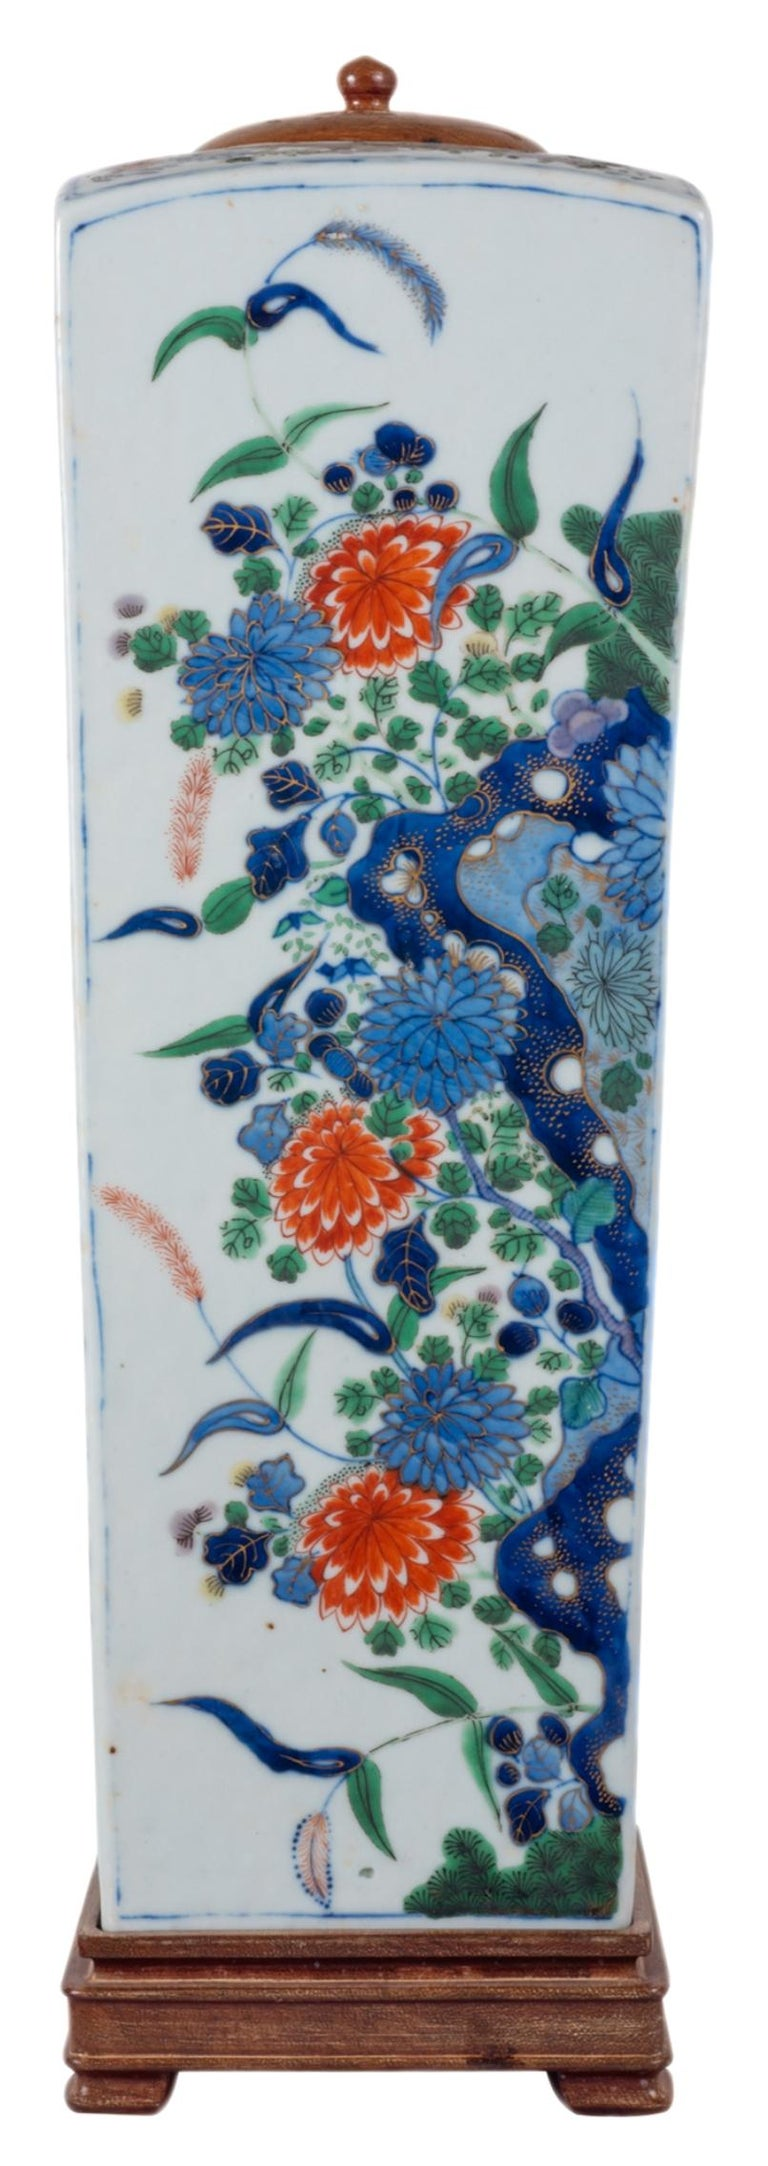 Chinese Export 19th Century Chinese Famille Verte Vase or Lamp, circa 1880 For Sale